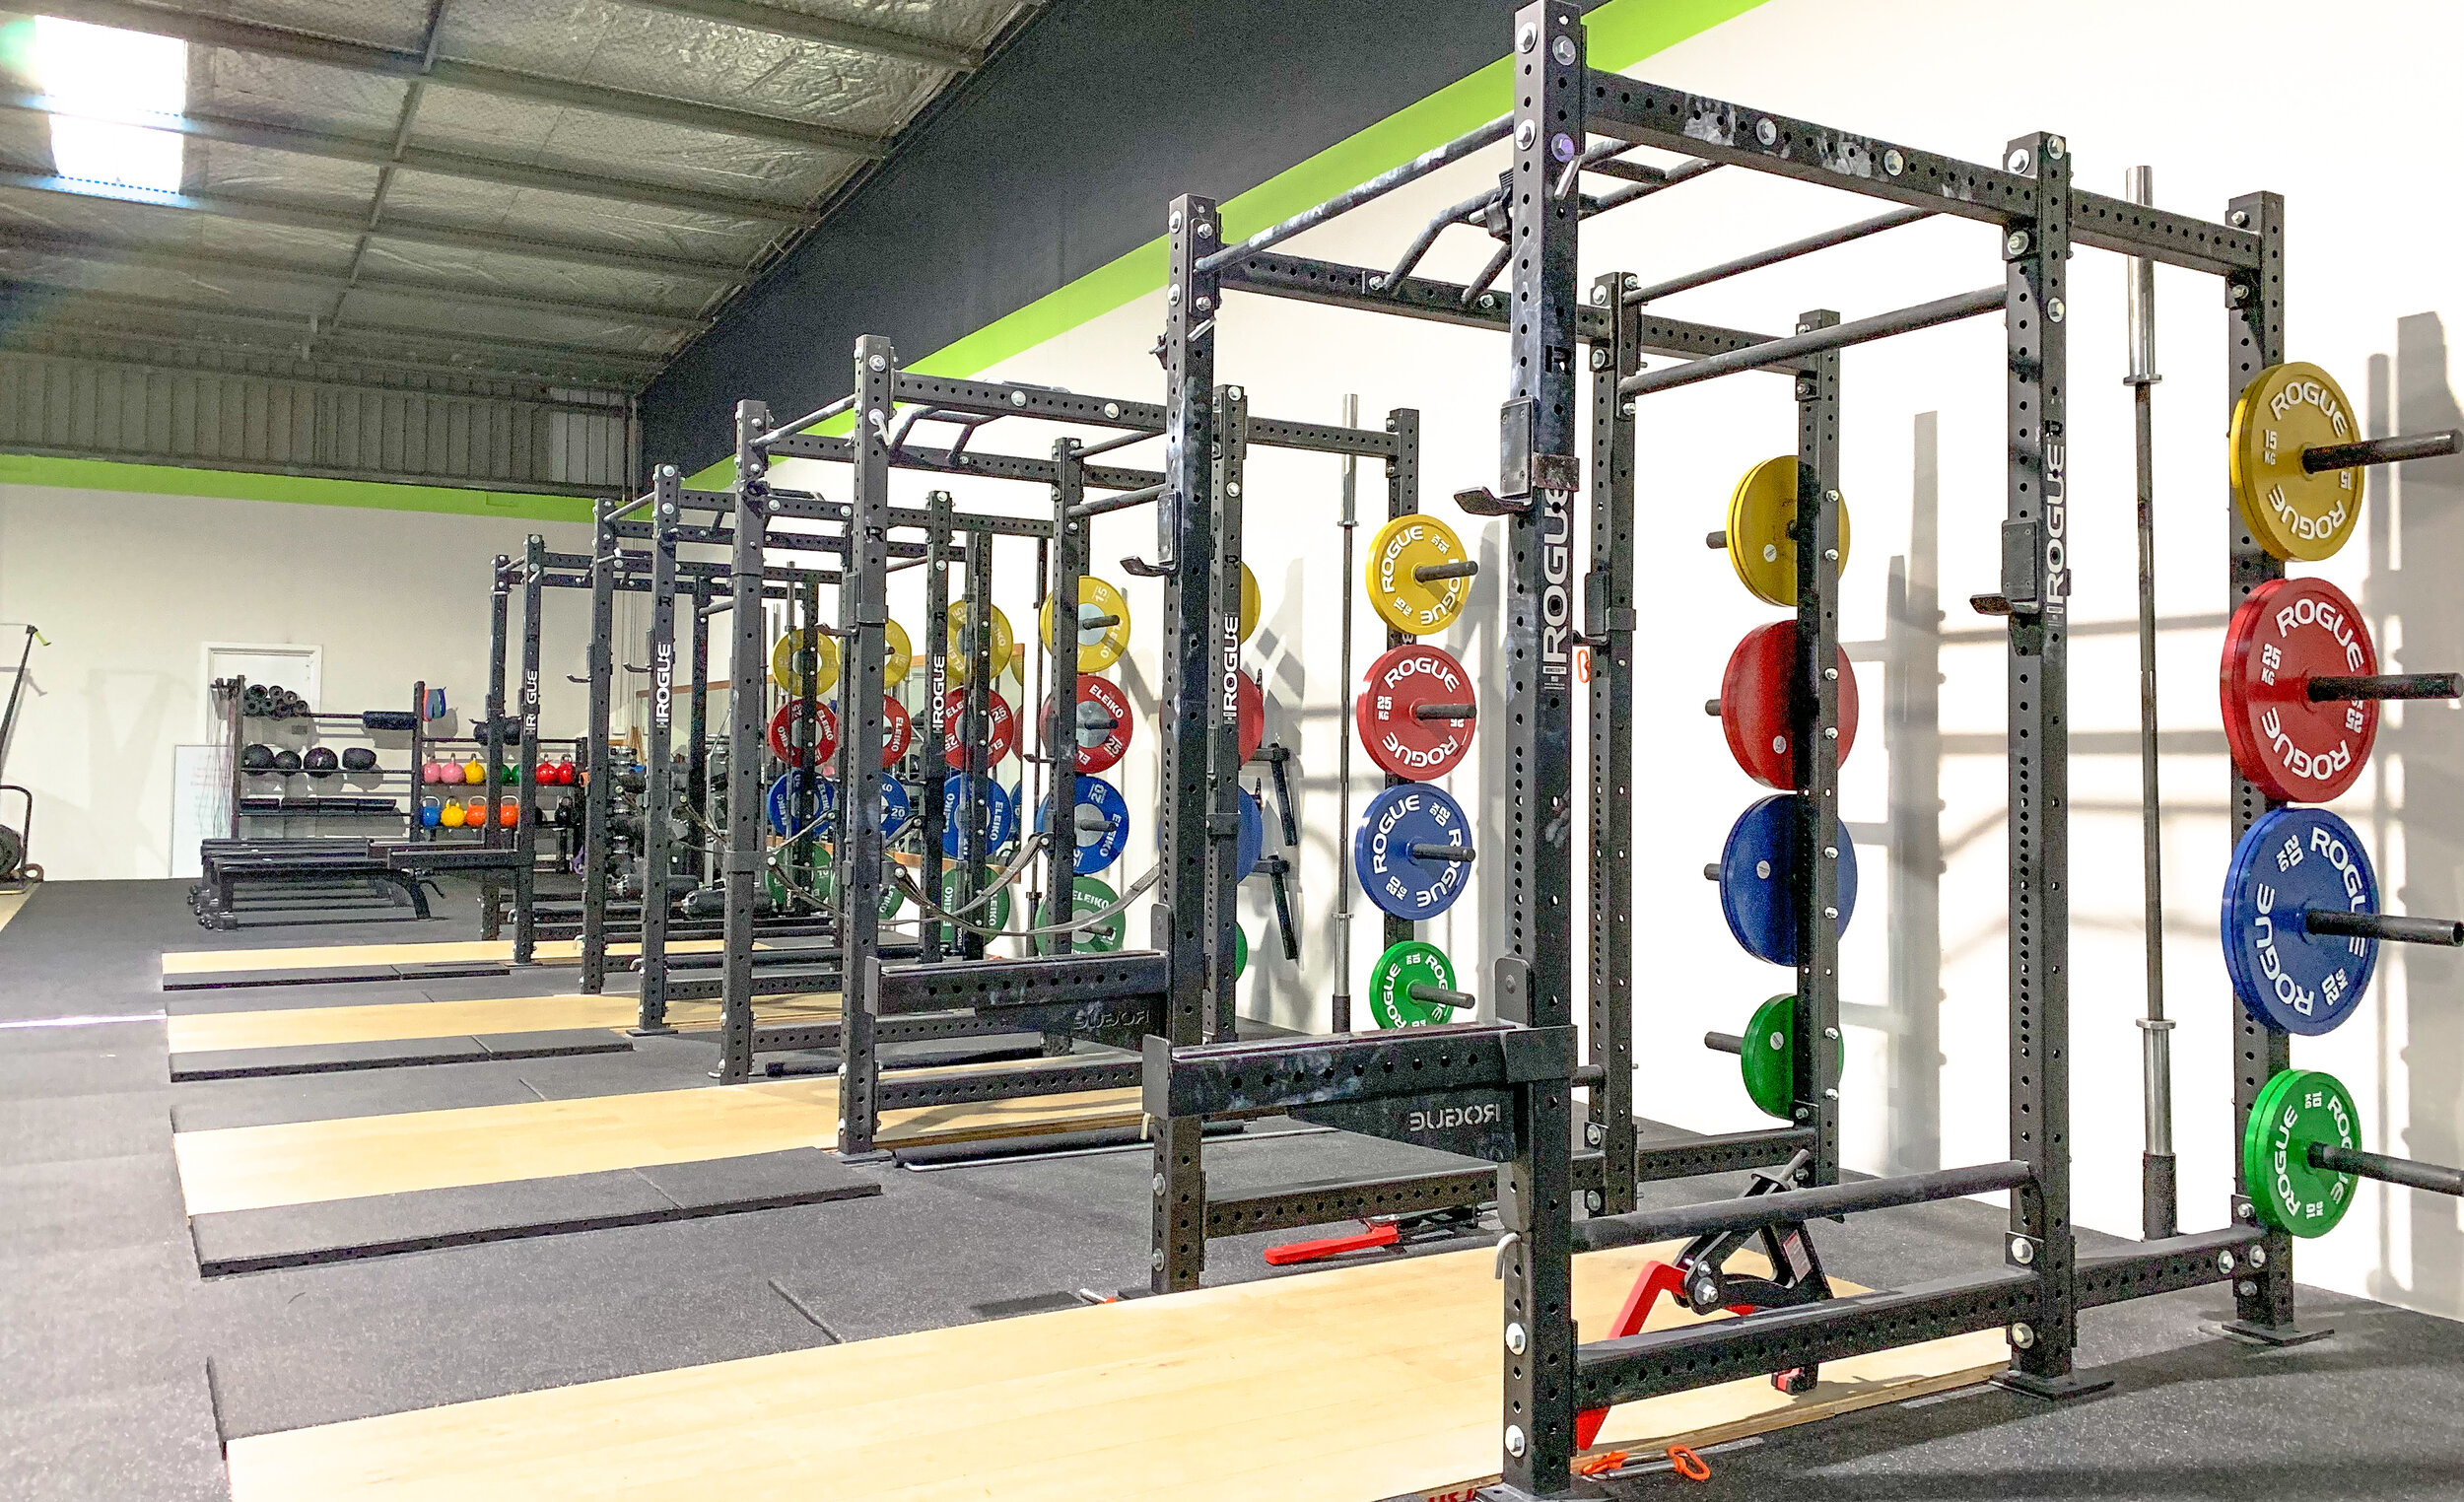 open gym - Make the most of our world class facility and skip the crowds of a commercial gym.